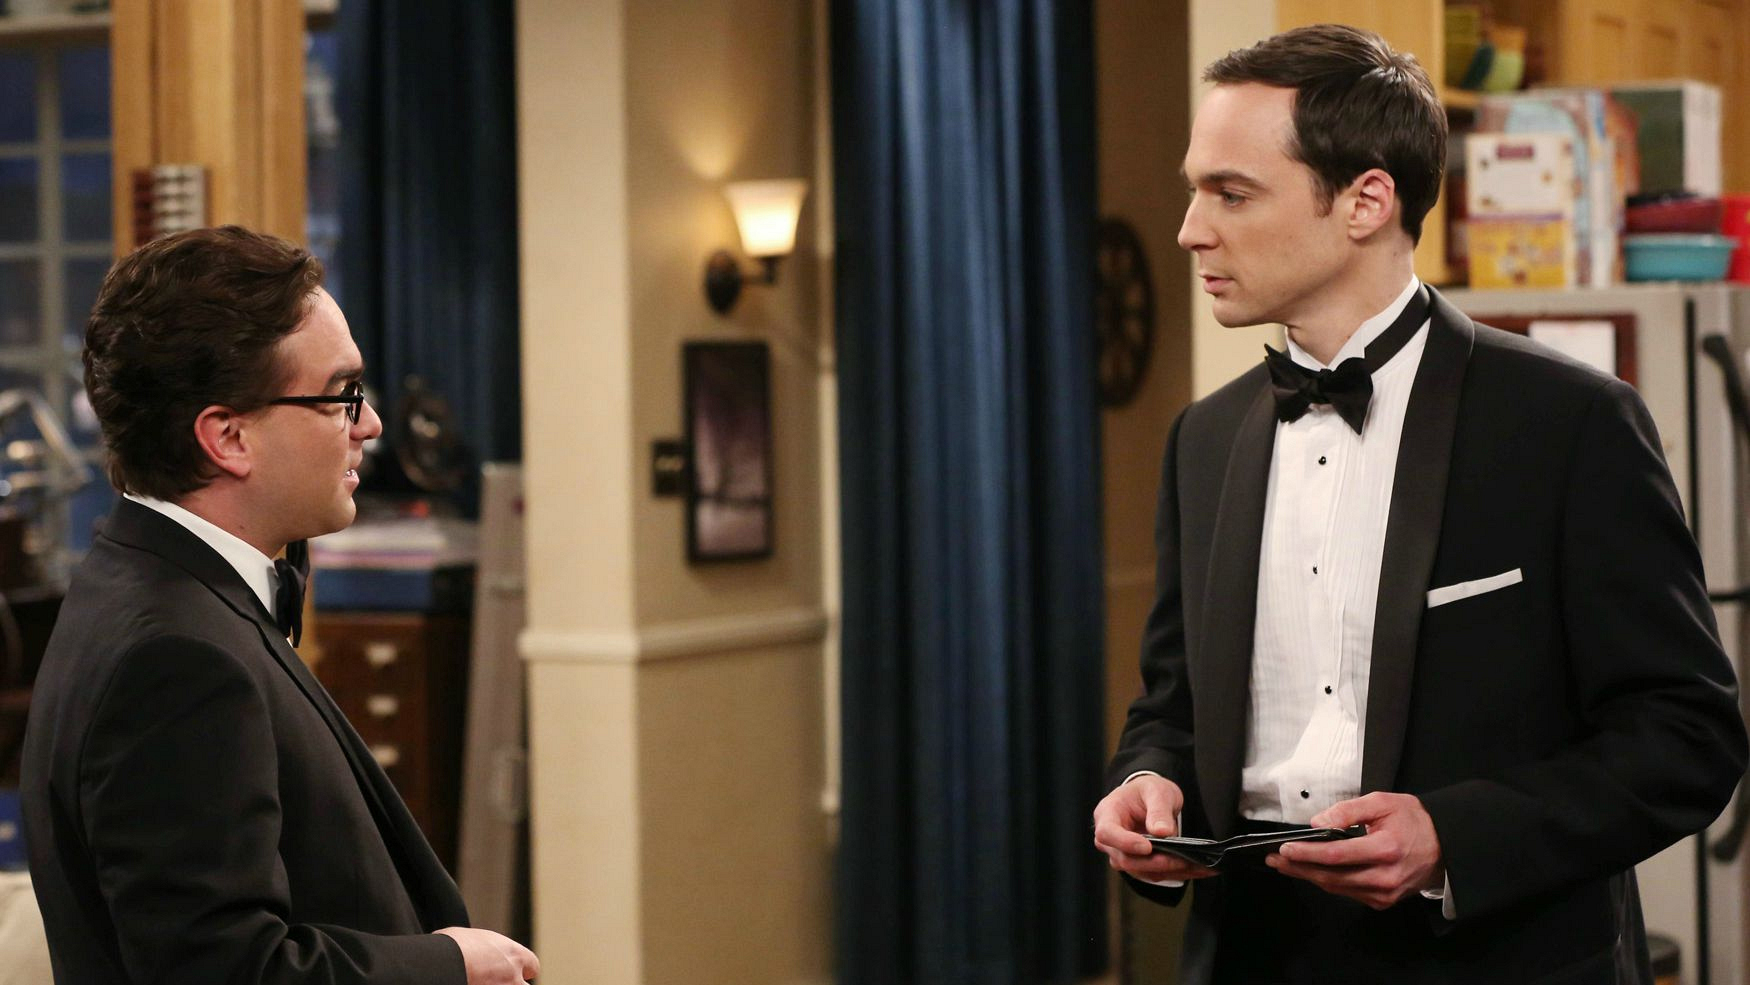 Dr. Leonard Hofstadter and Dr. Sheldon Cooper on The Big Bang Theory